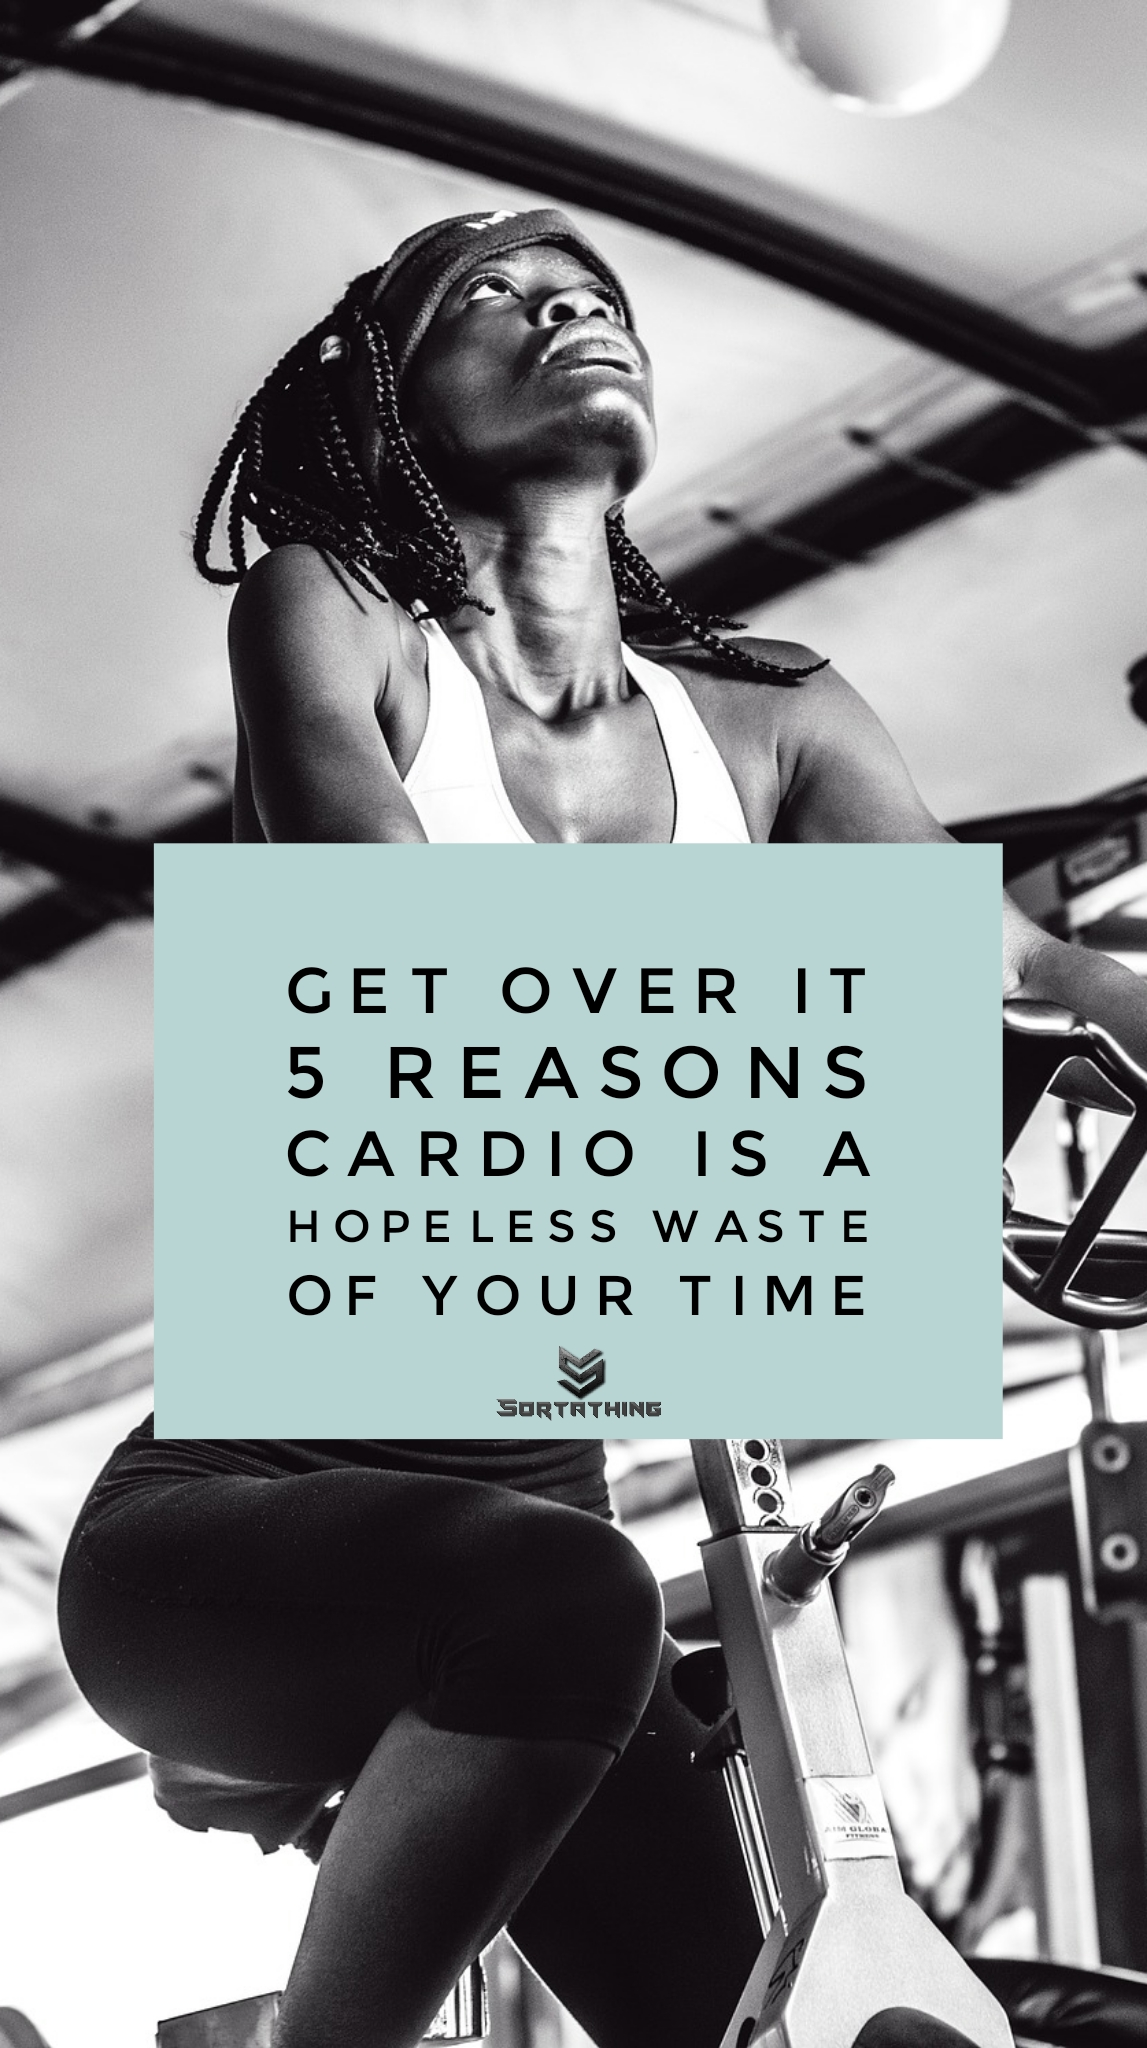 Time - Expensive - Cardio Waste of Time